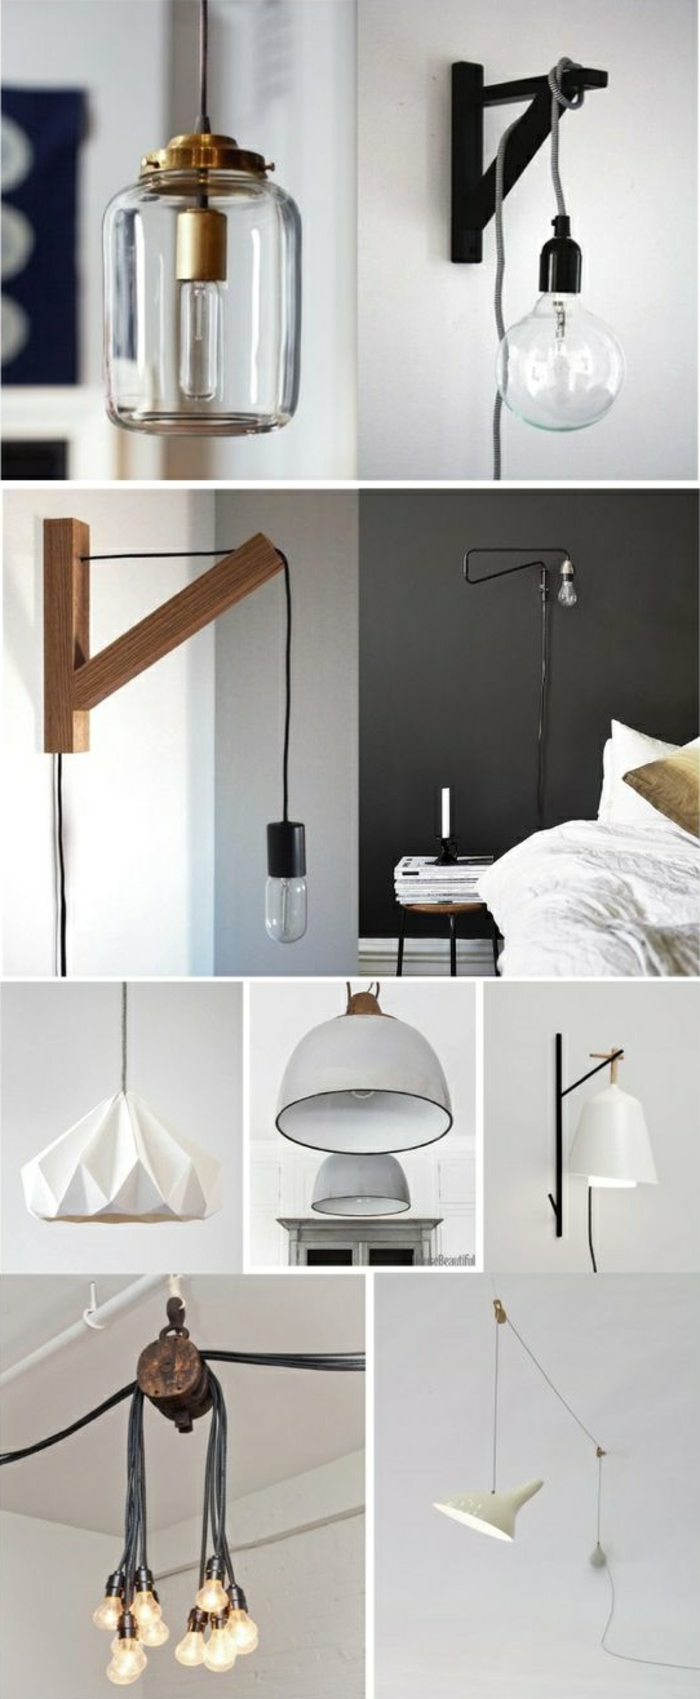 lampen schlafzimmer ideen just another wordpress site. Black Bedroom Furniture Sets. Home Design Ideas